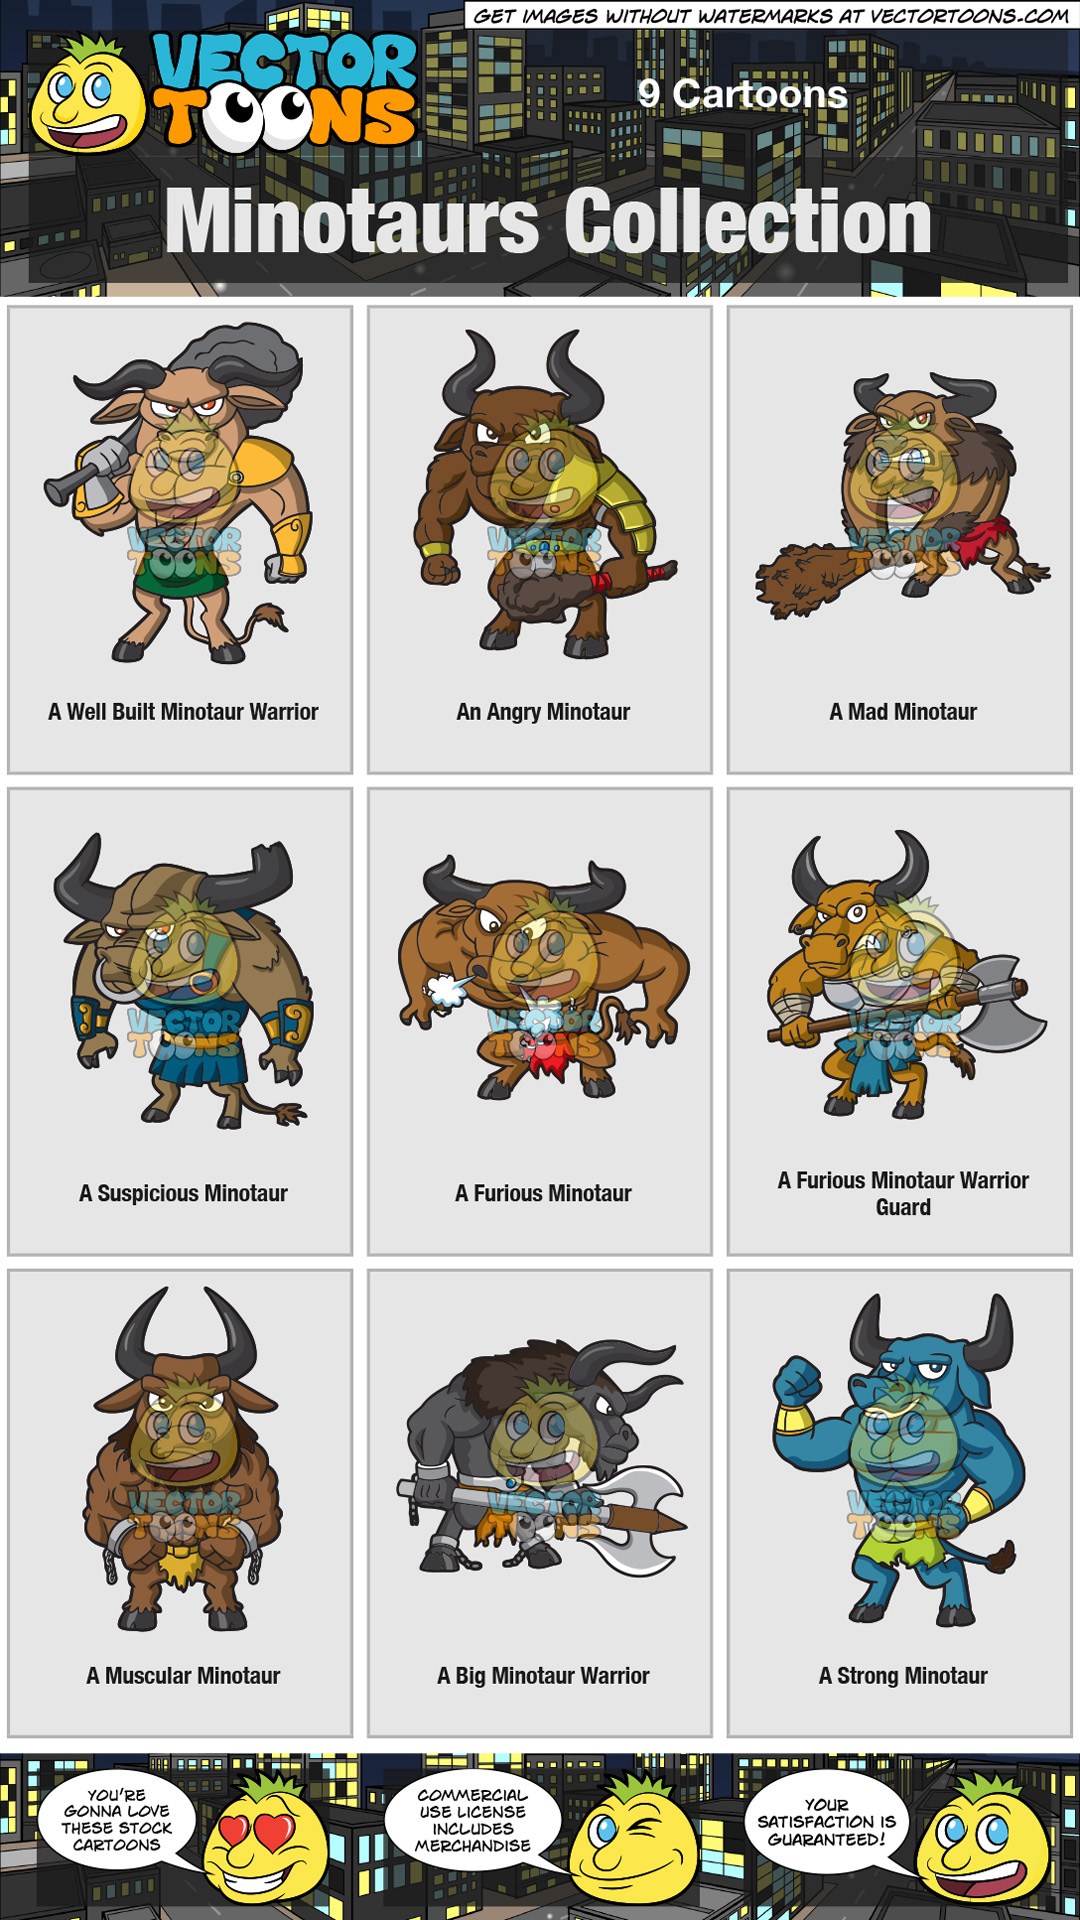 Minotaurs Collection thumbnail